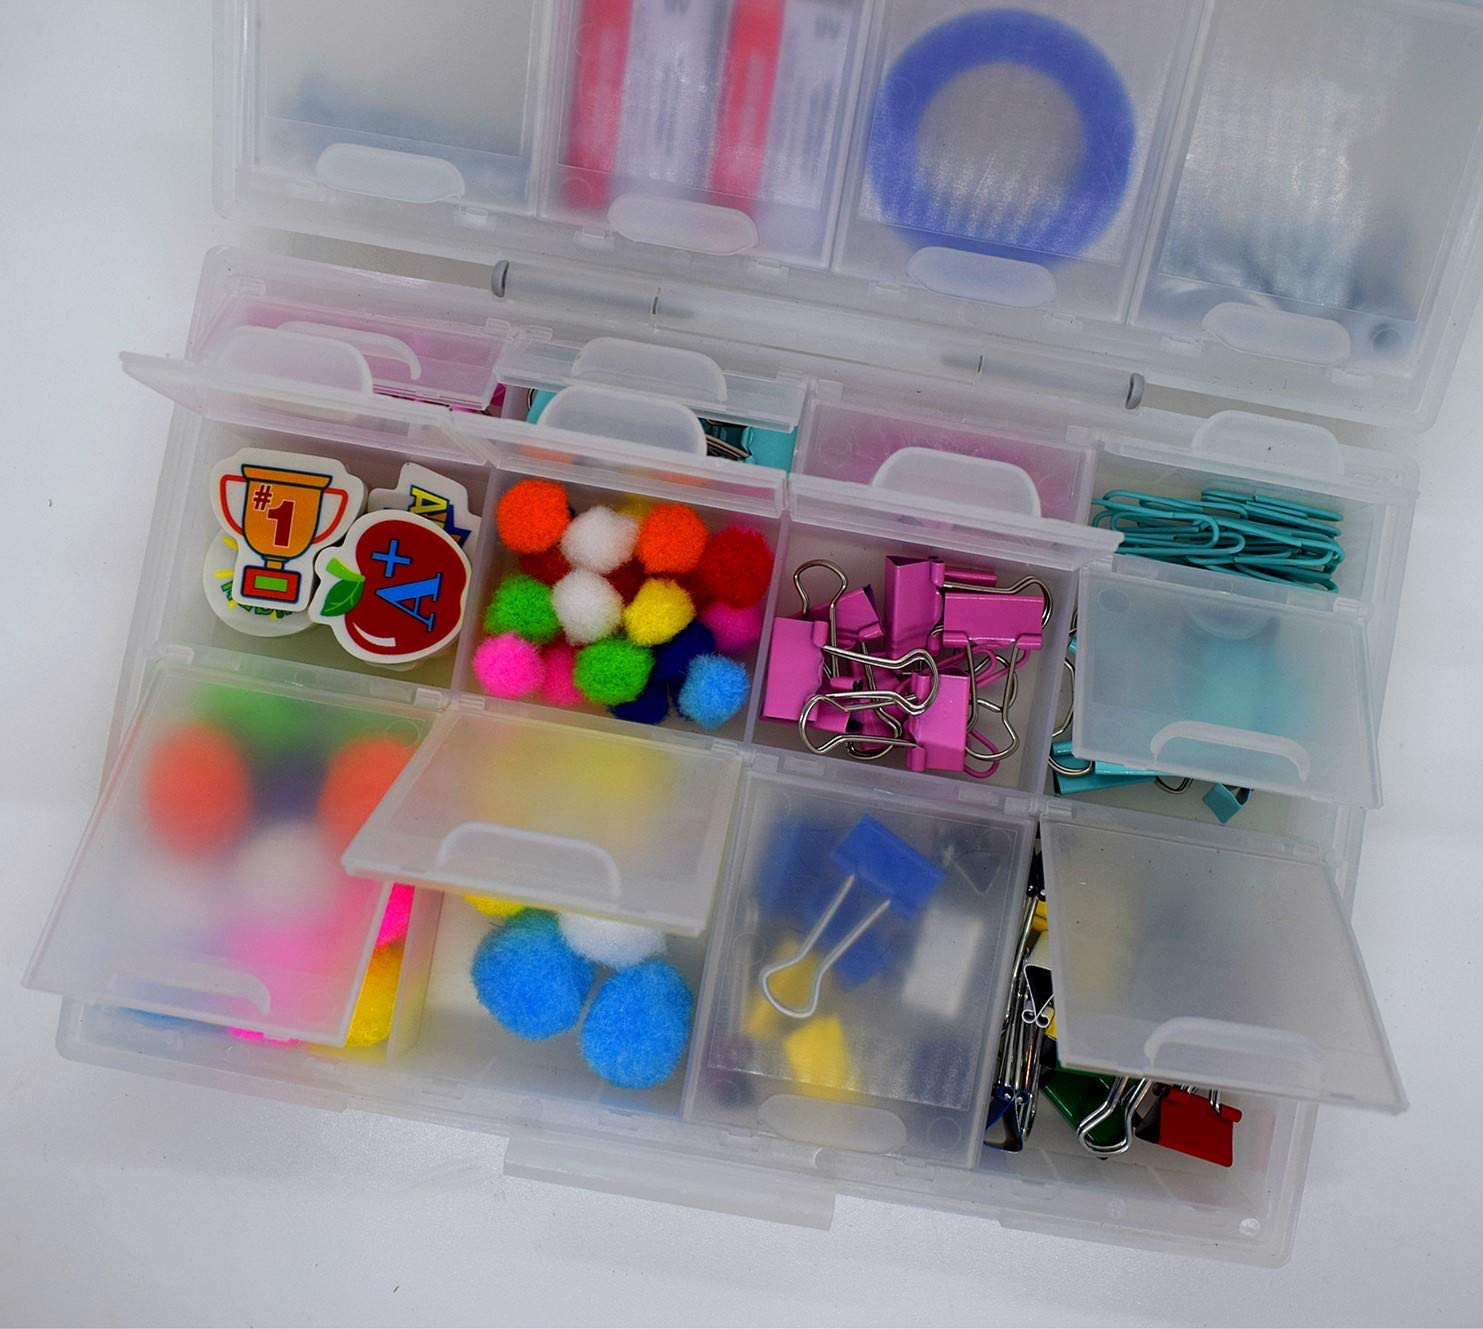 Aidetek Half Transparent BOX-ALL-24 Small Parts Beads Stationery Jewelry Box Organizer for Sorted Parts 3 Sizes 24 compartments with lid